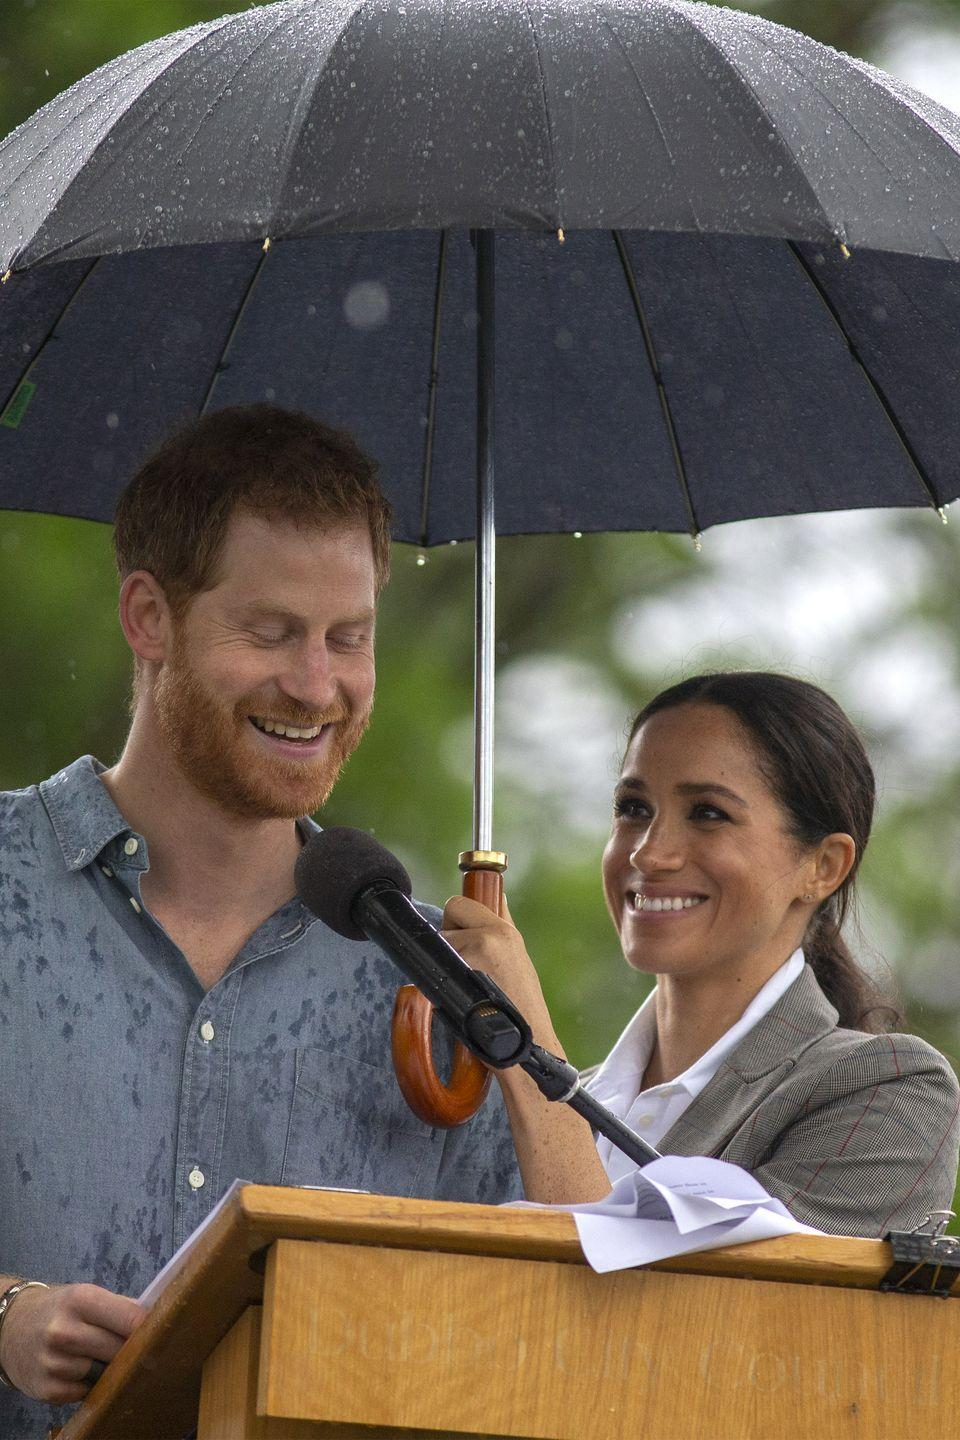 <p>Meghan has Harry's back, rain or shine! The duchess held an umbrella for Prince Harry as he made a speech during a Community Event at Victoria Park in Dubbo, Australia. </p>